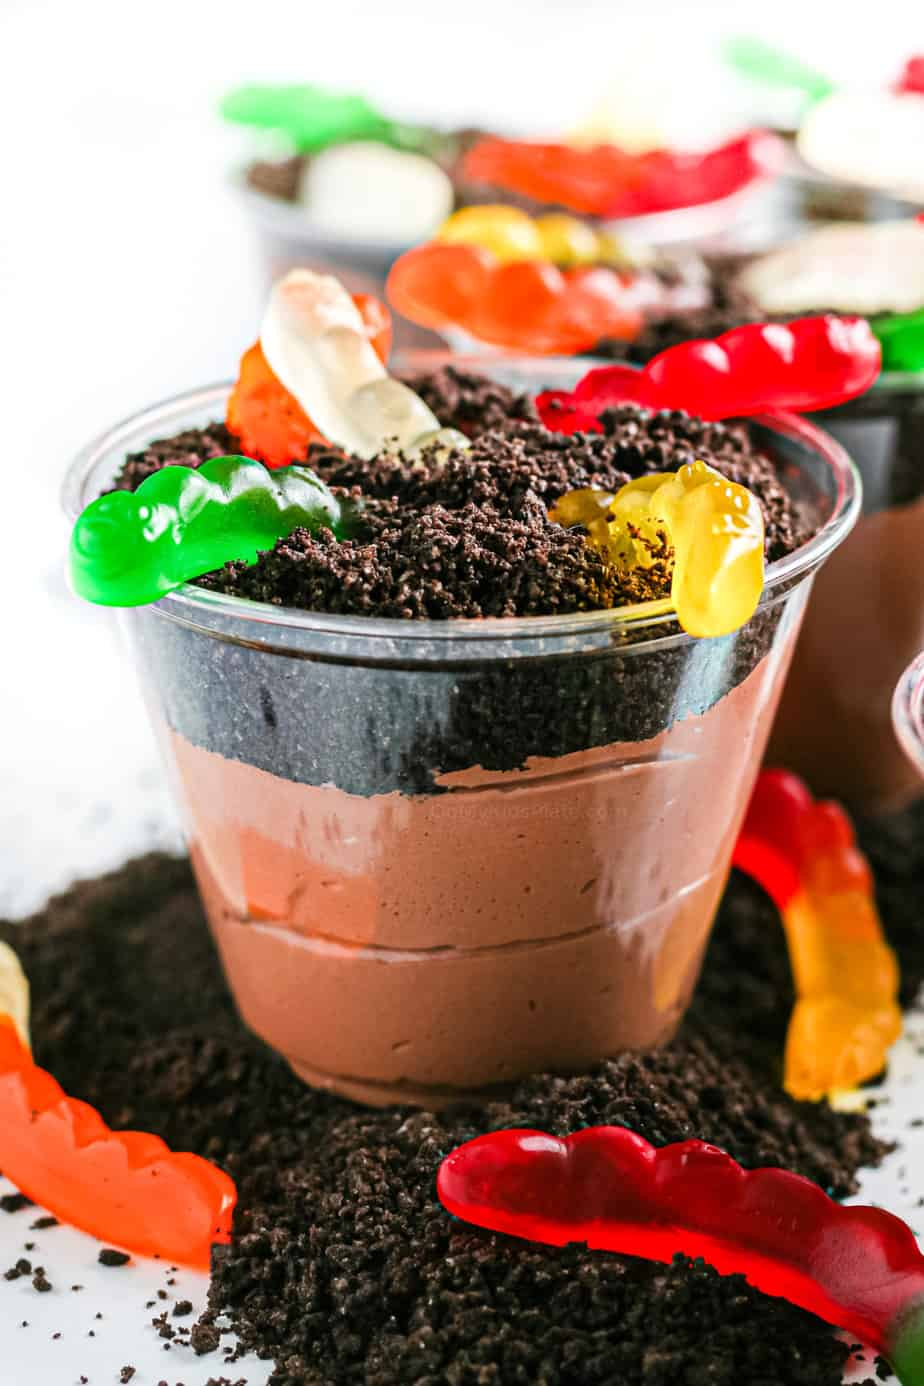 Chocolate pudding layered with oreo crumbs and gummy worms in a clear cup from the side